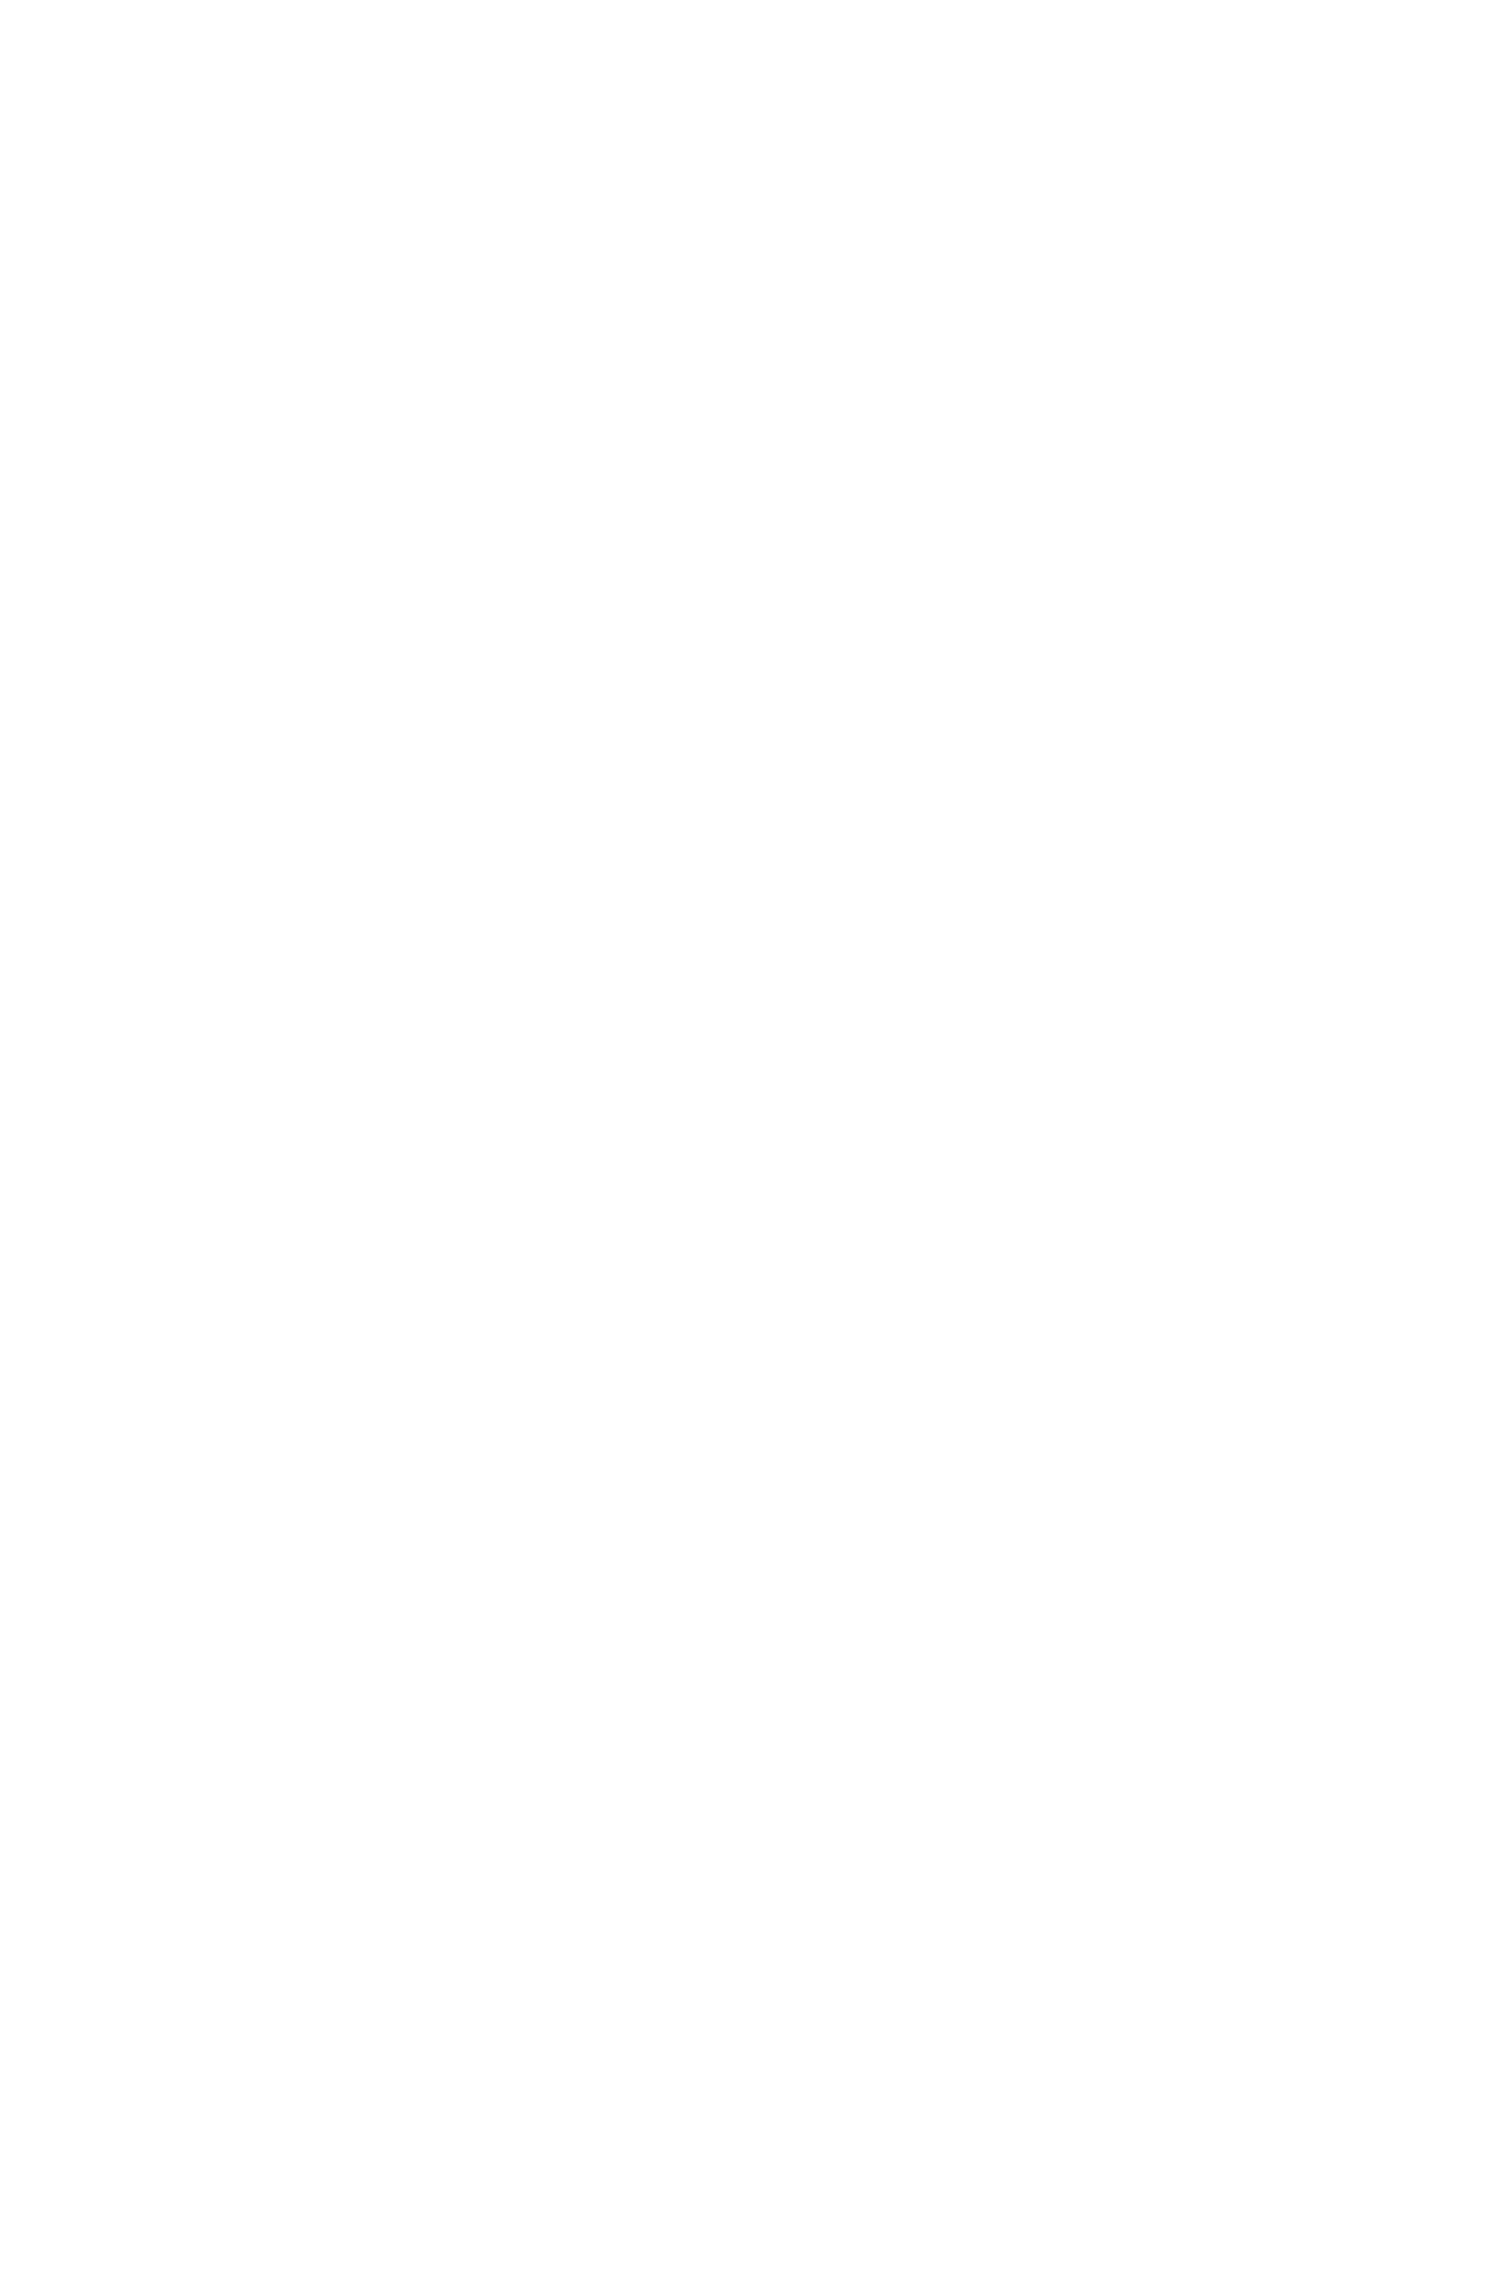 Pilot House Cycles